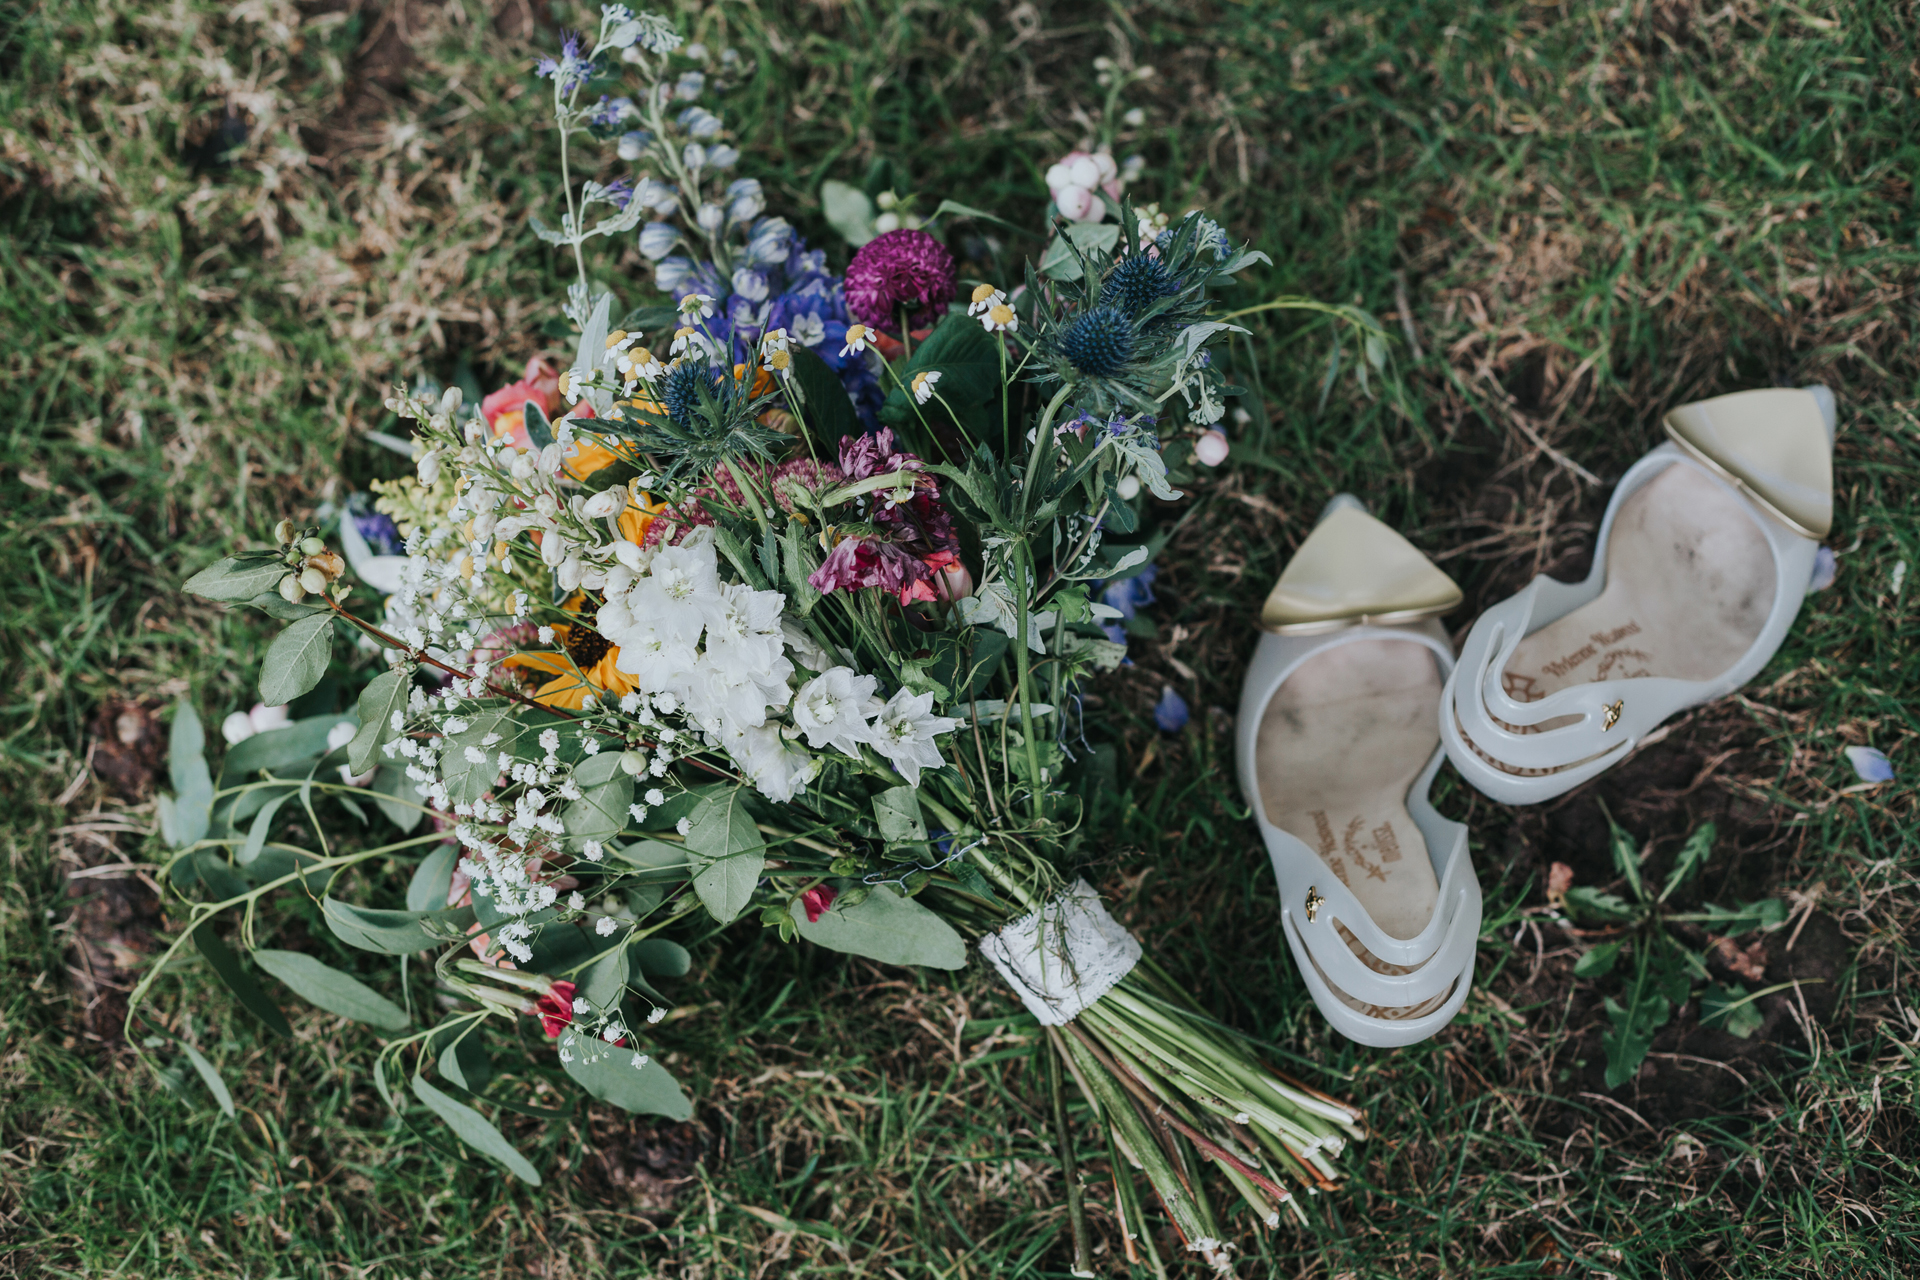 Brides flowers and shoes lying on the grass.